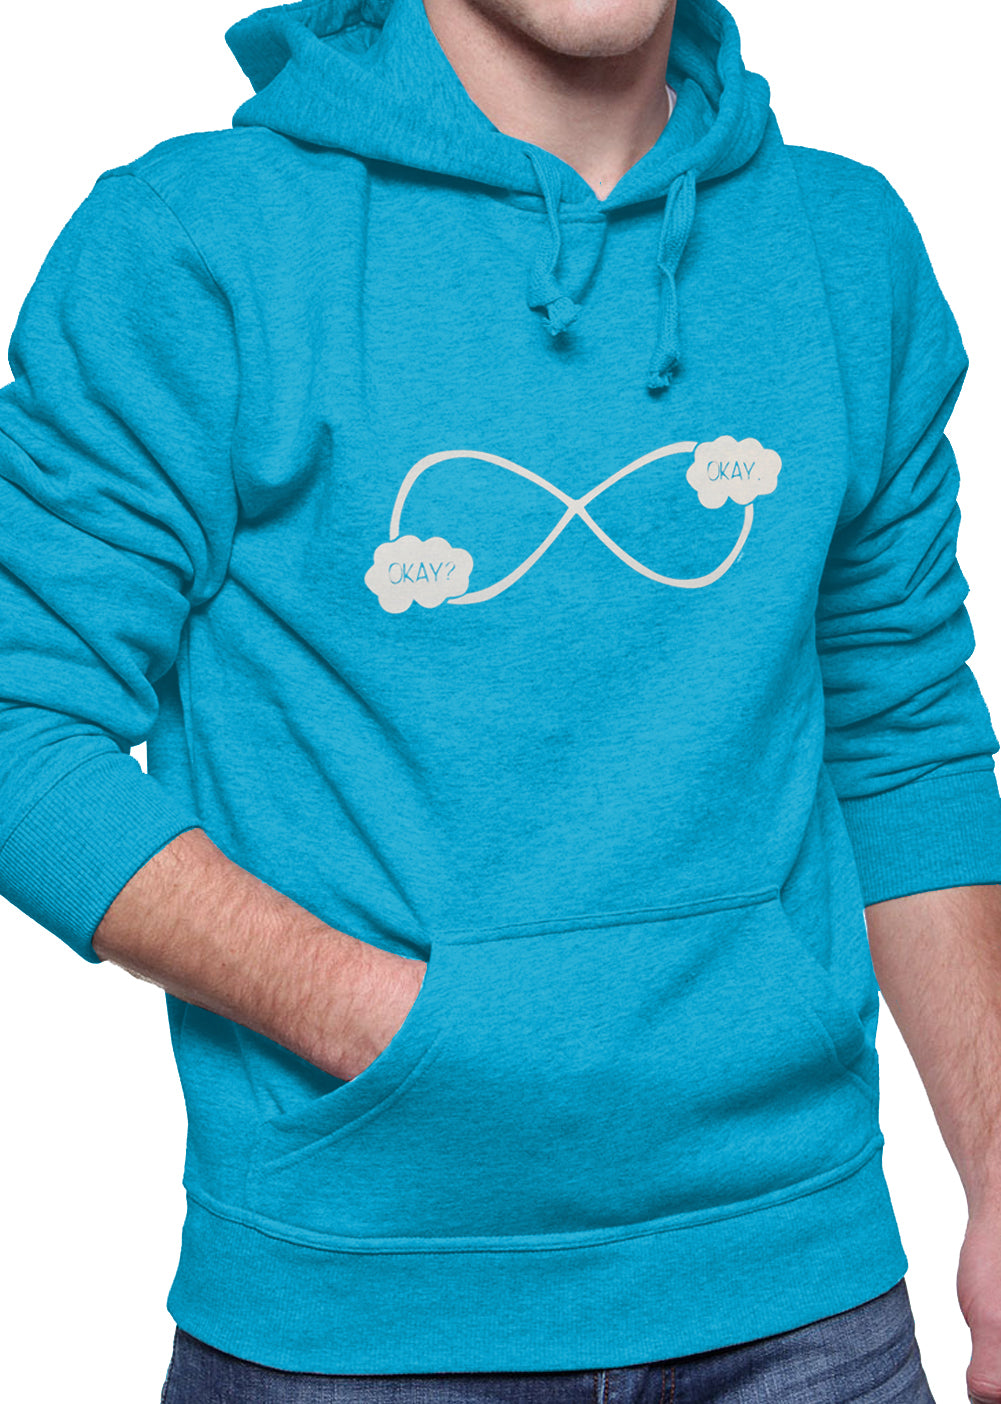 """Okay? Okay."" John Green Quote The Fault in Our Stars Infinity Symbol Adult Hoodie"